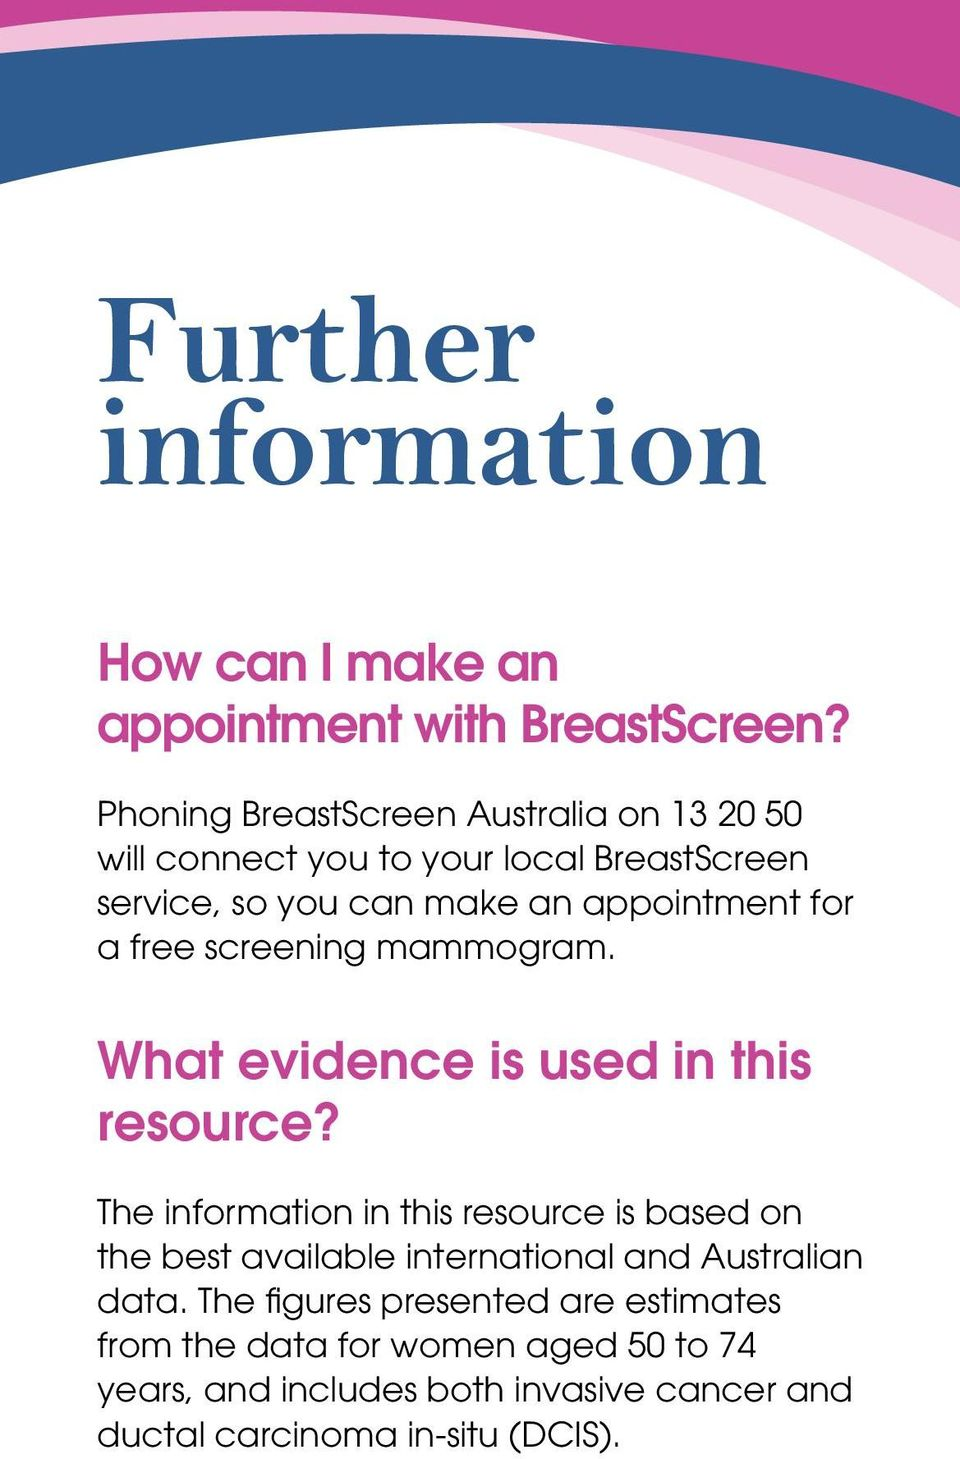 for a free screening mammogram. What evidence is used in this resource?